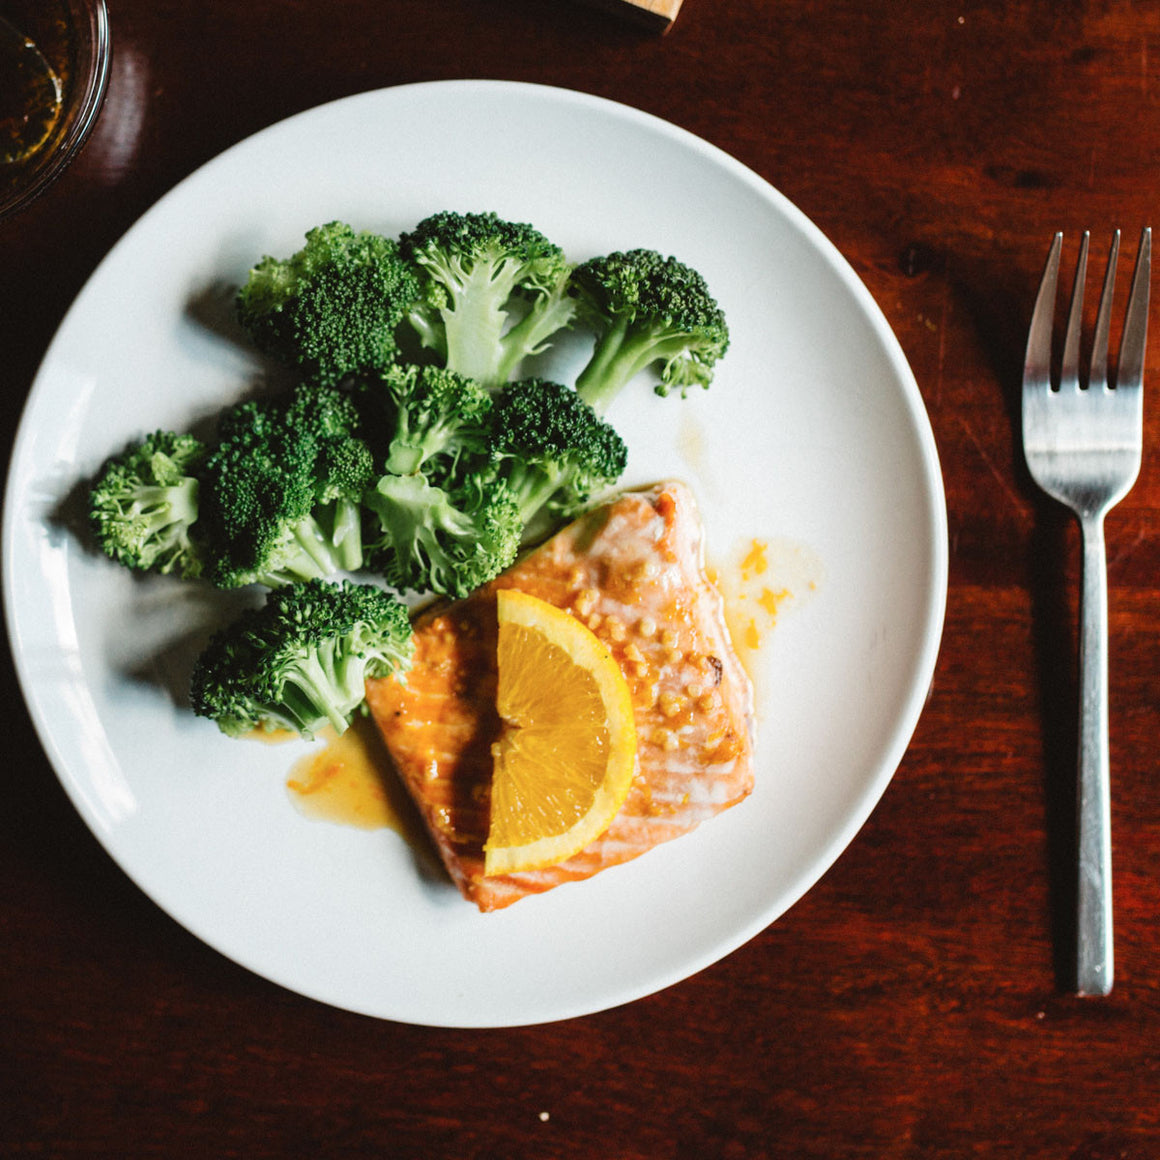 Orange teriyaki salmon & broccoli